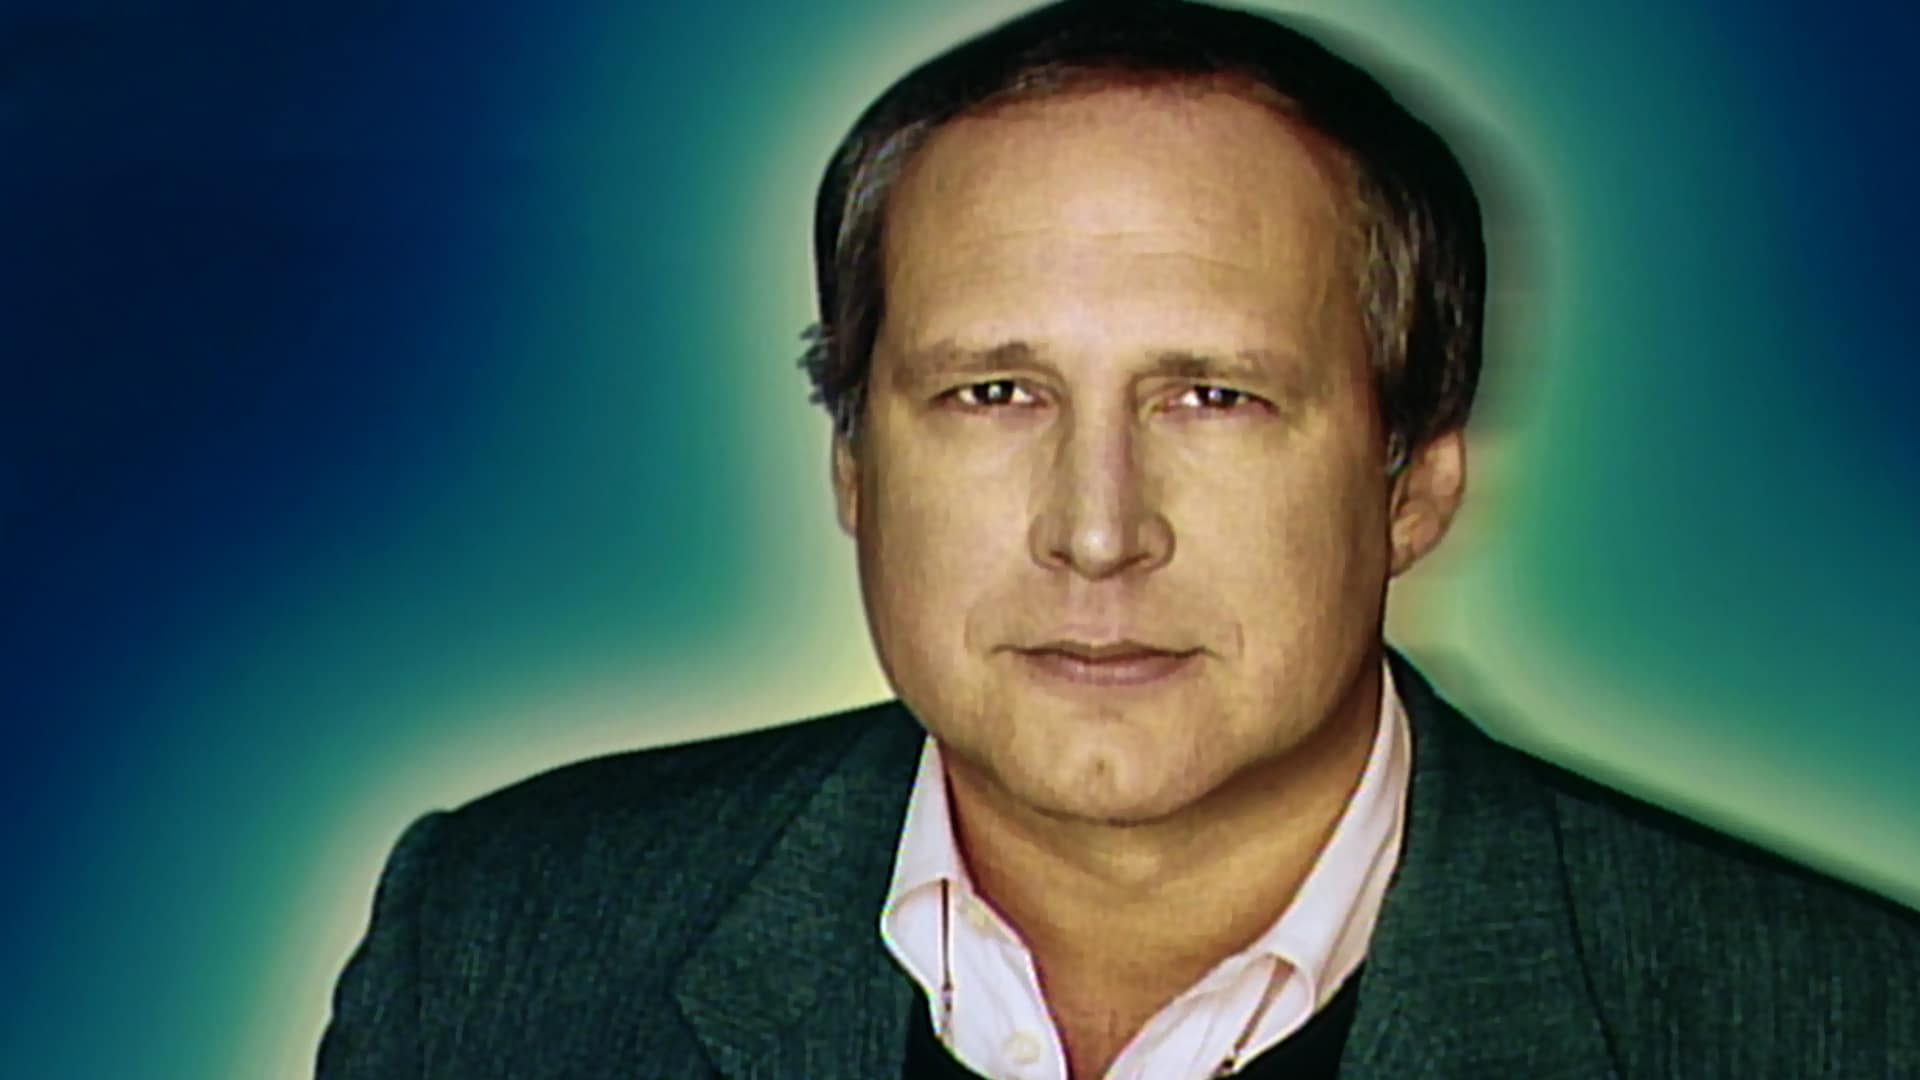 Chevy Chase: February 15, 1997